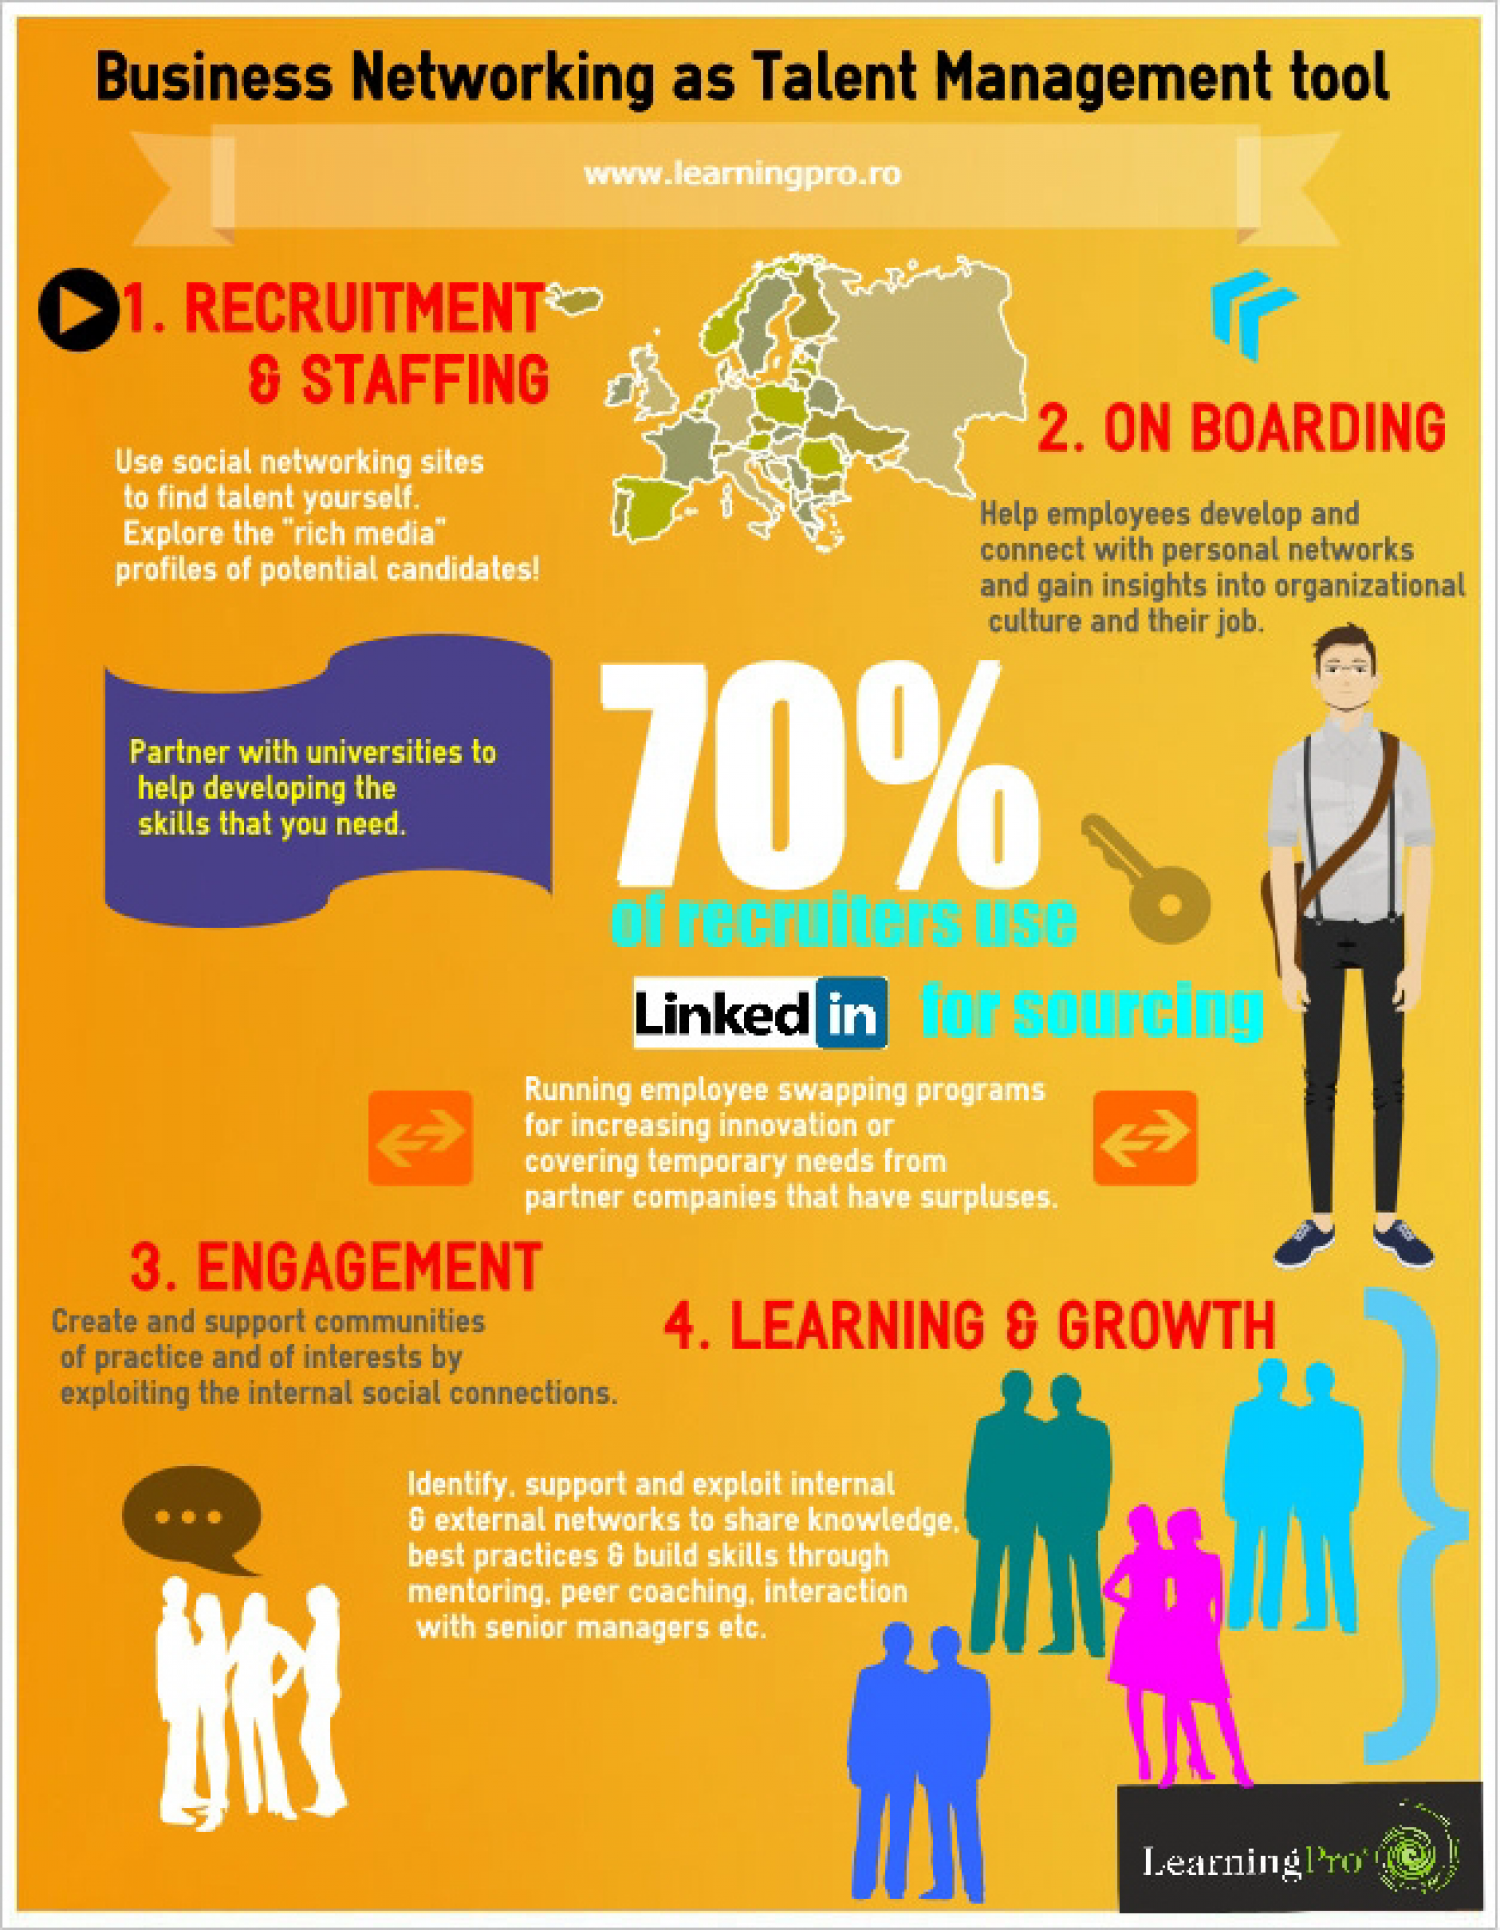 Business Networking as Talent Management tool | Visual.ly